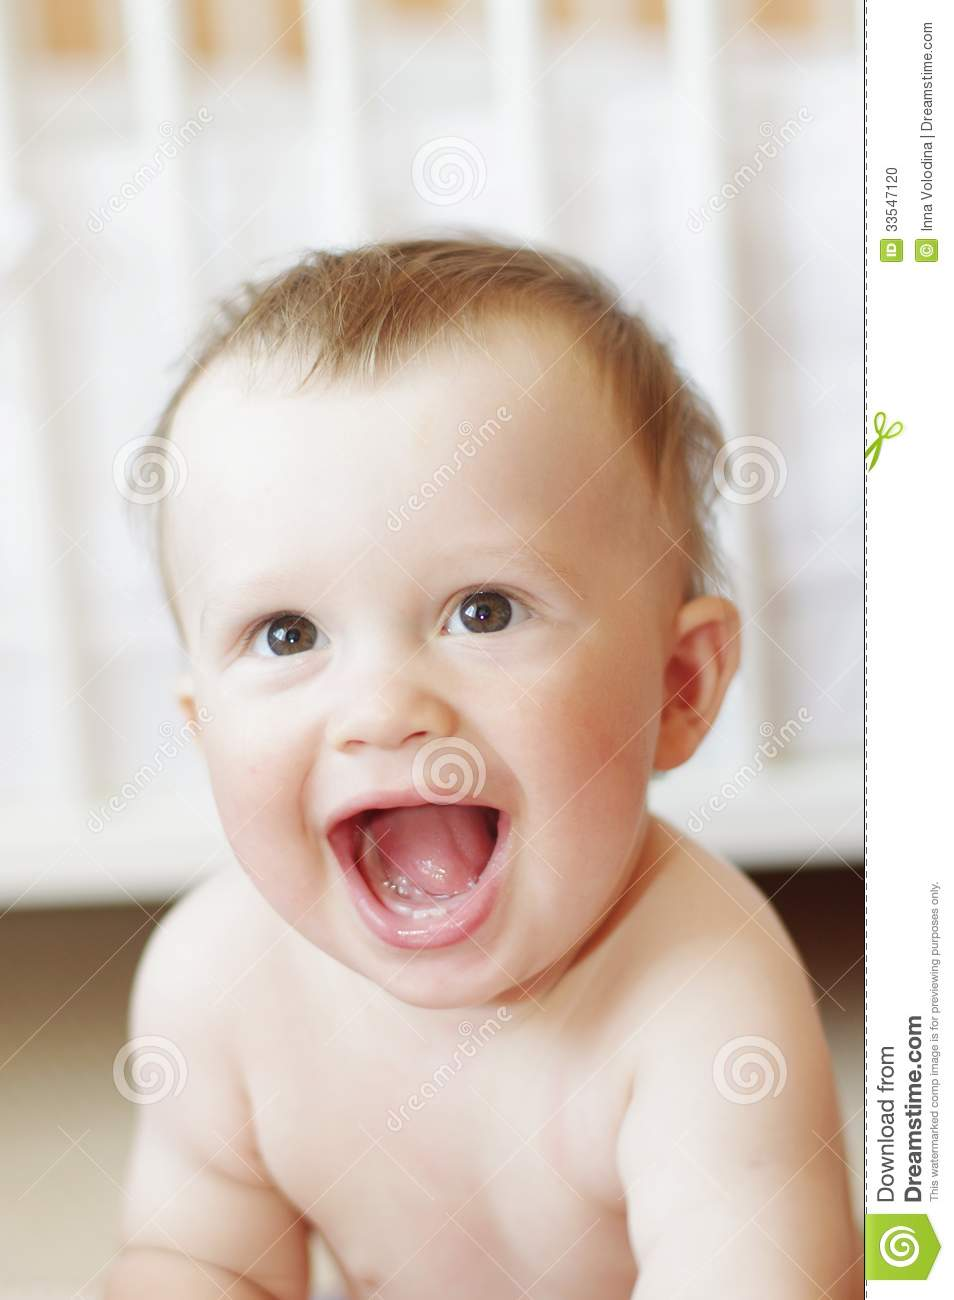 What Age Should Baby Laugh